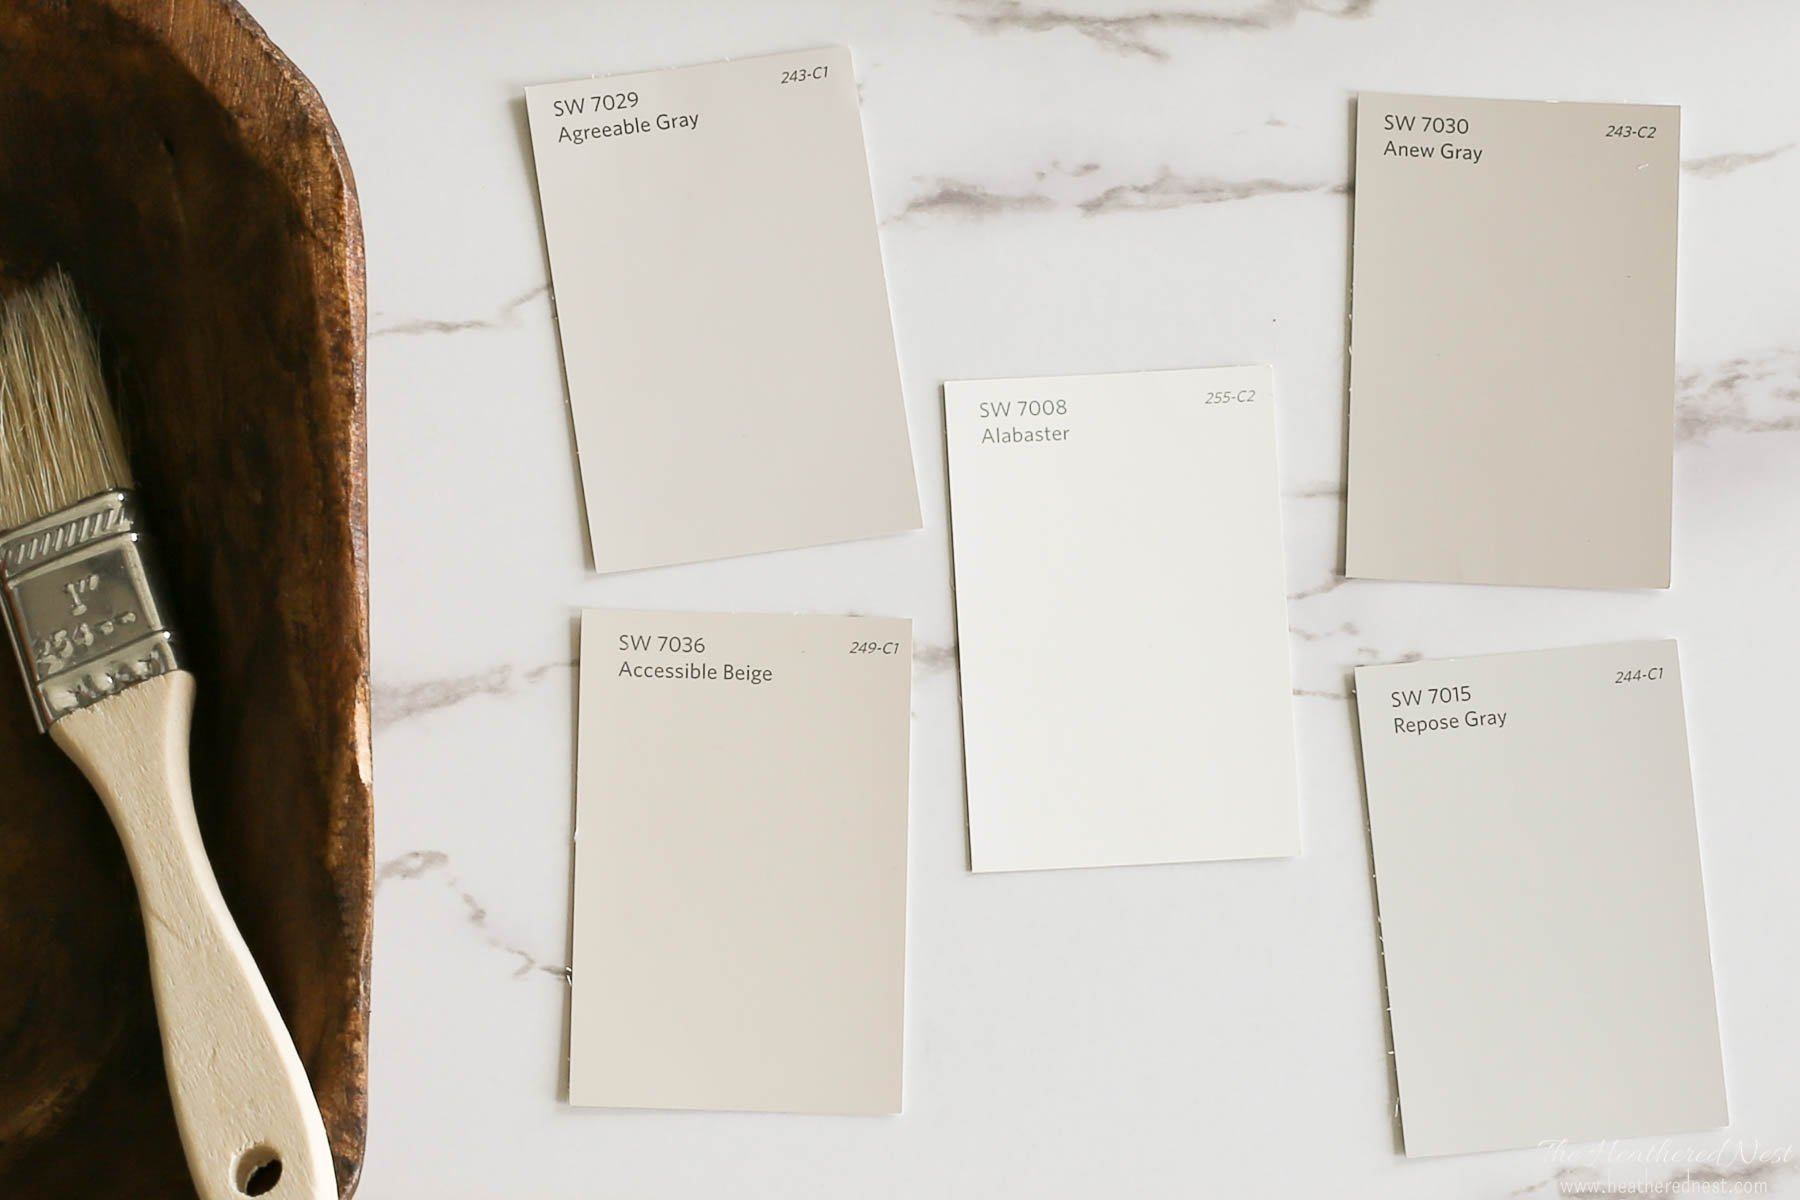 five sherwin williams paint swatches on a marble background next to primitive wood bowl with wood paintbrush. swatches include alabaster, accessible beige, repose gray and